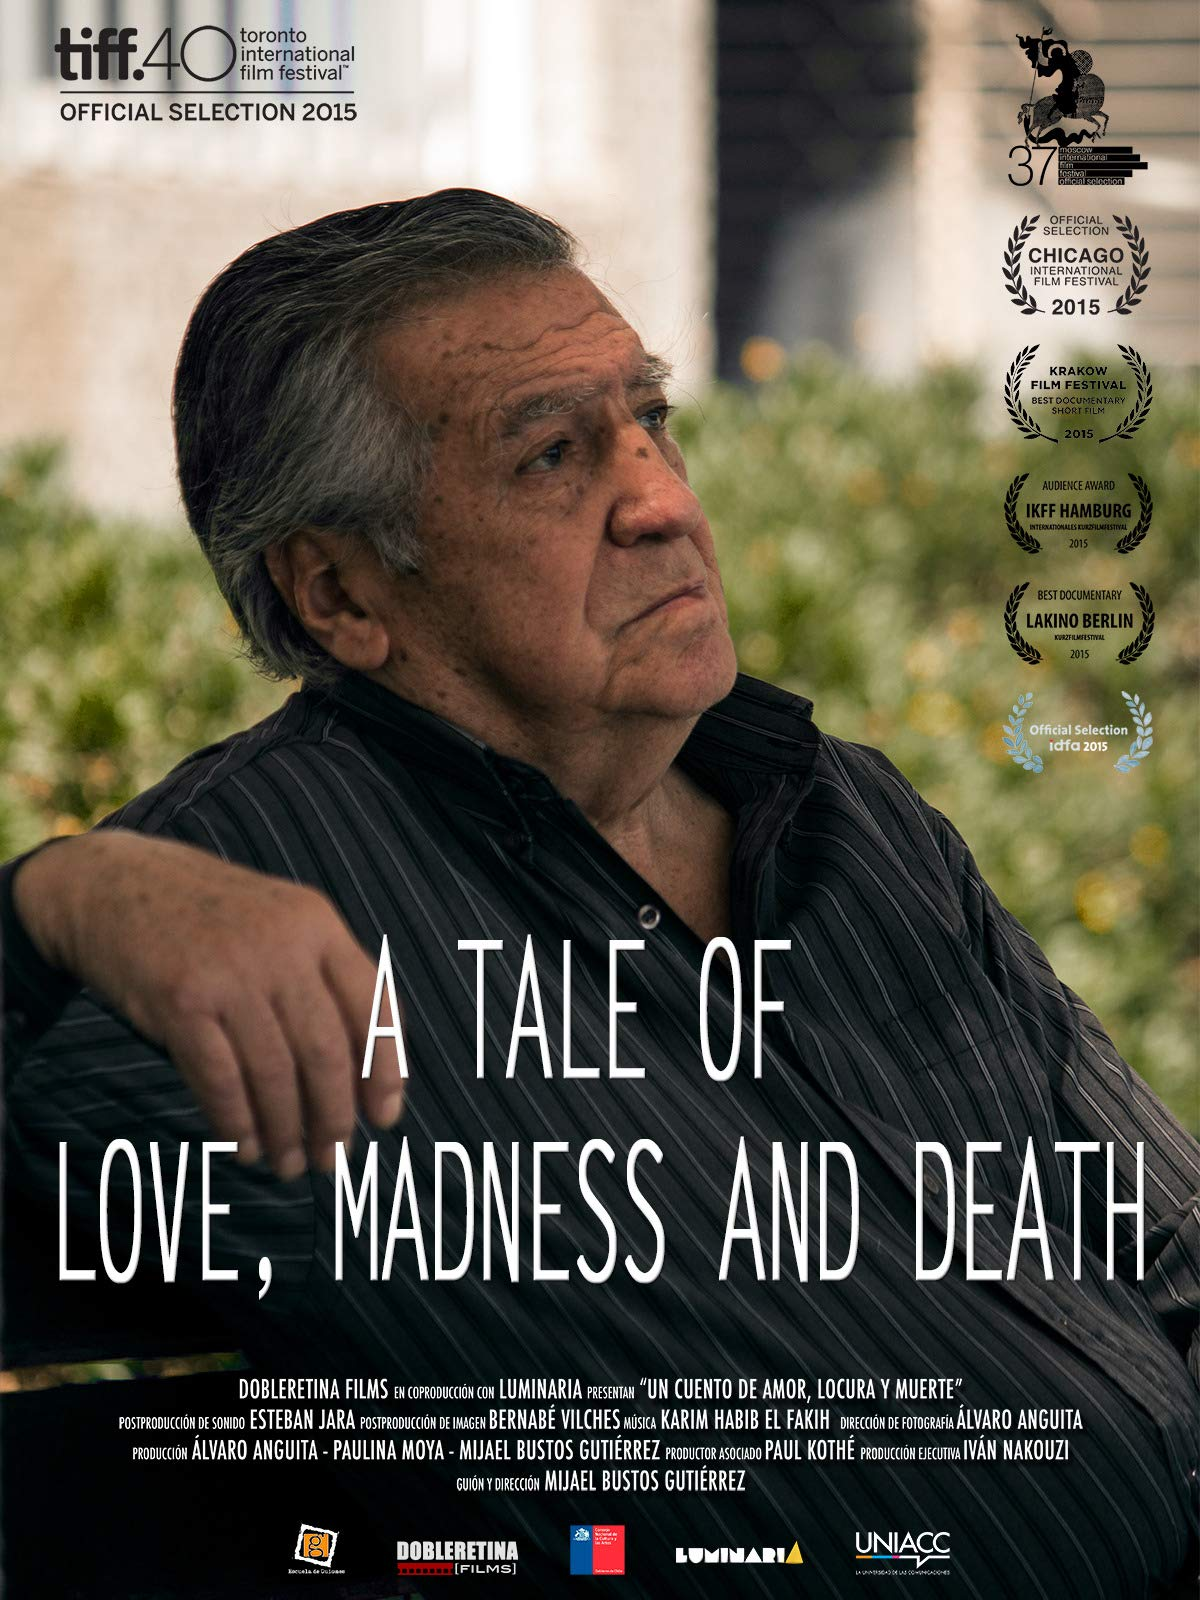 A Tale of Love, Madness and Death